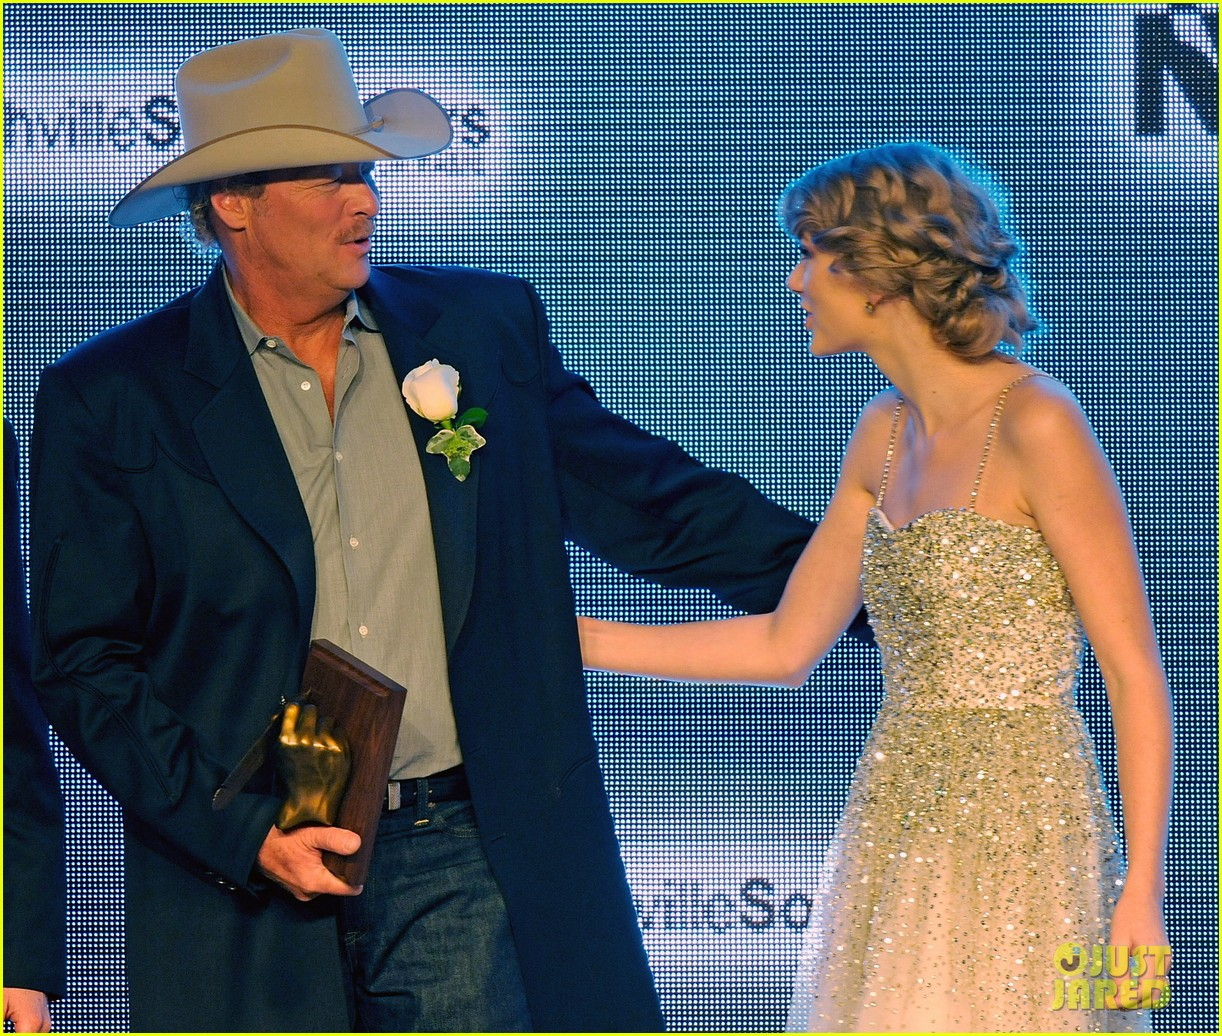 taylor swift nashville songwriters hall of fame honoree 03